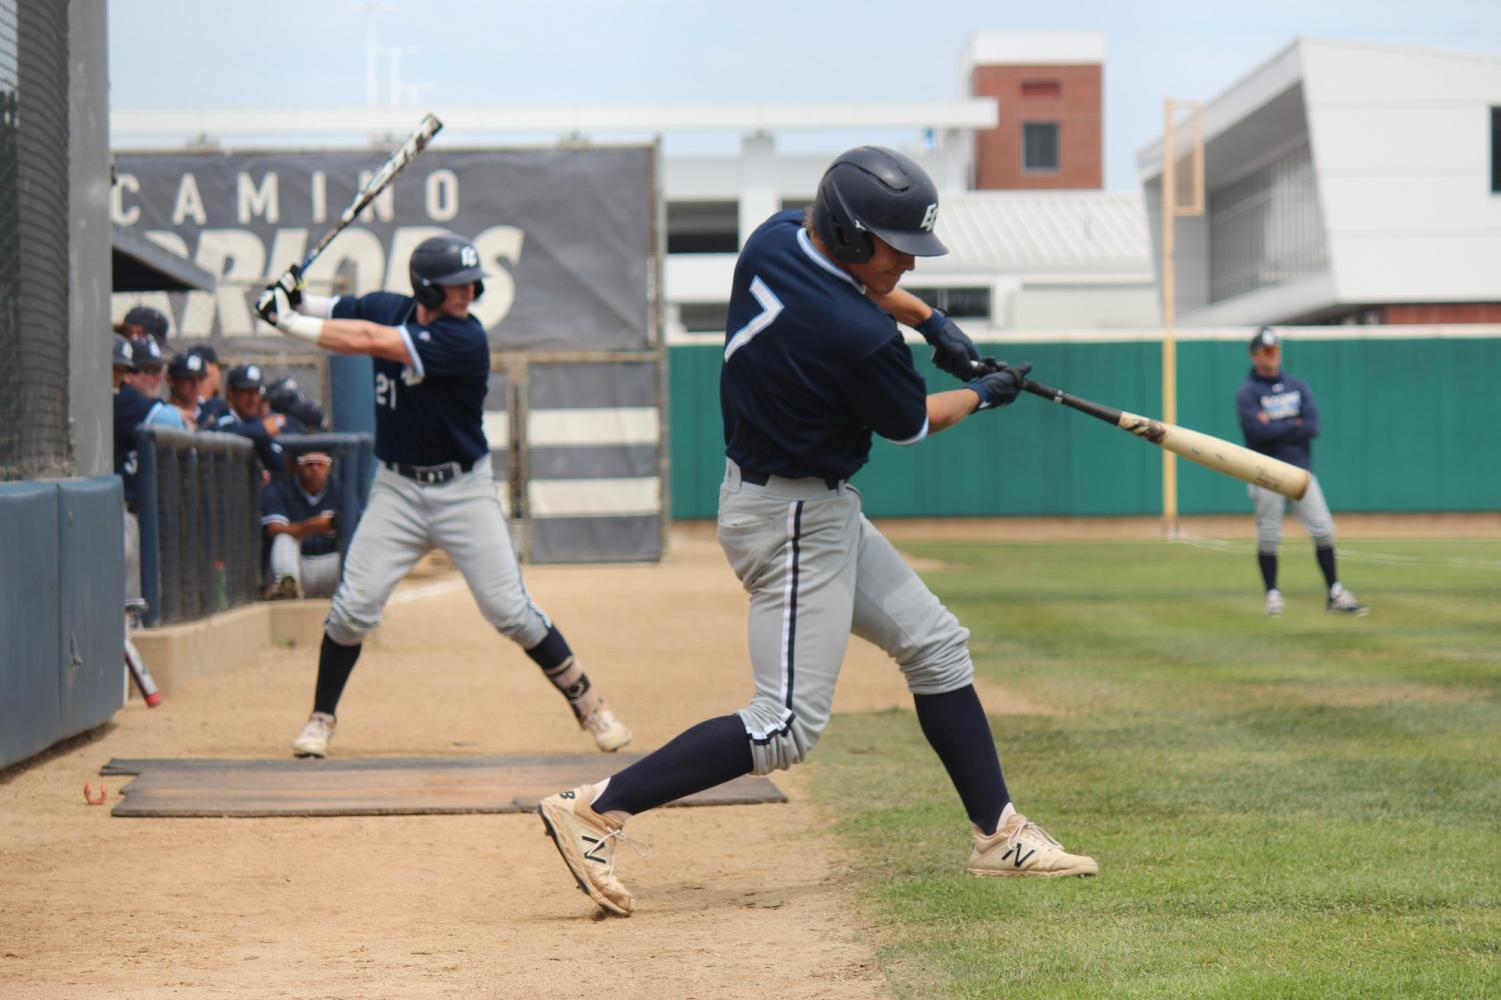 Warriors infielder and right-handed pitcher Spencer Long (front) and outfielder Ty Conrad (back) take practice swings before the beginning of the sixth inning of Game 2 against the Glendale Vaqueros on Saturday, May 18, at Warrior Field. The Warriors won the game, swept the series and will play in the final four of the 2019 California Community College Athletic Association State Championship. Photo credit: Devyn Smith